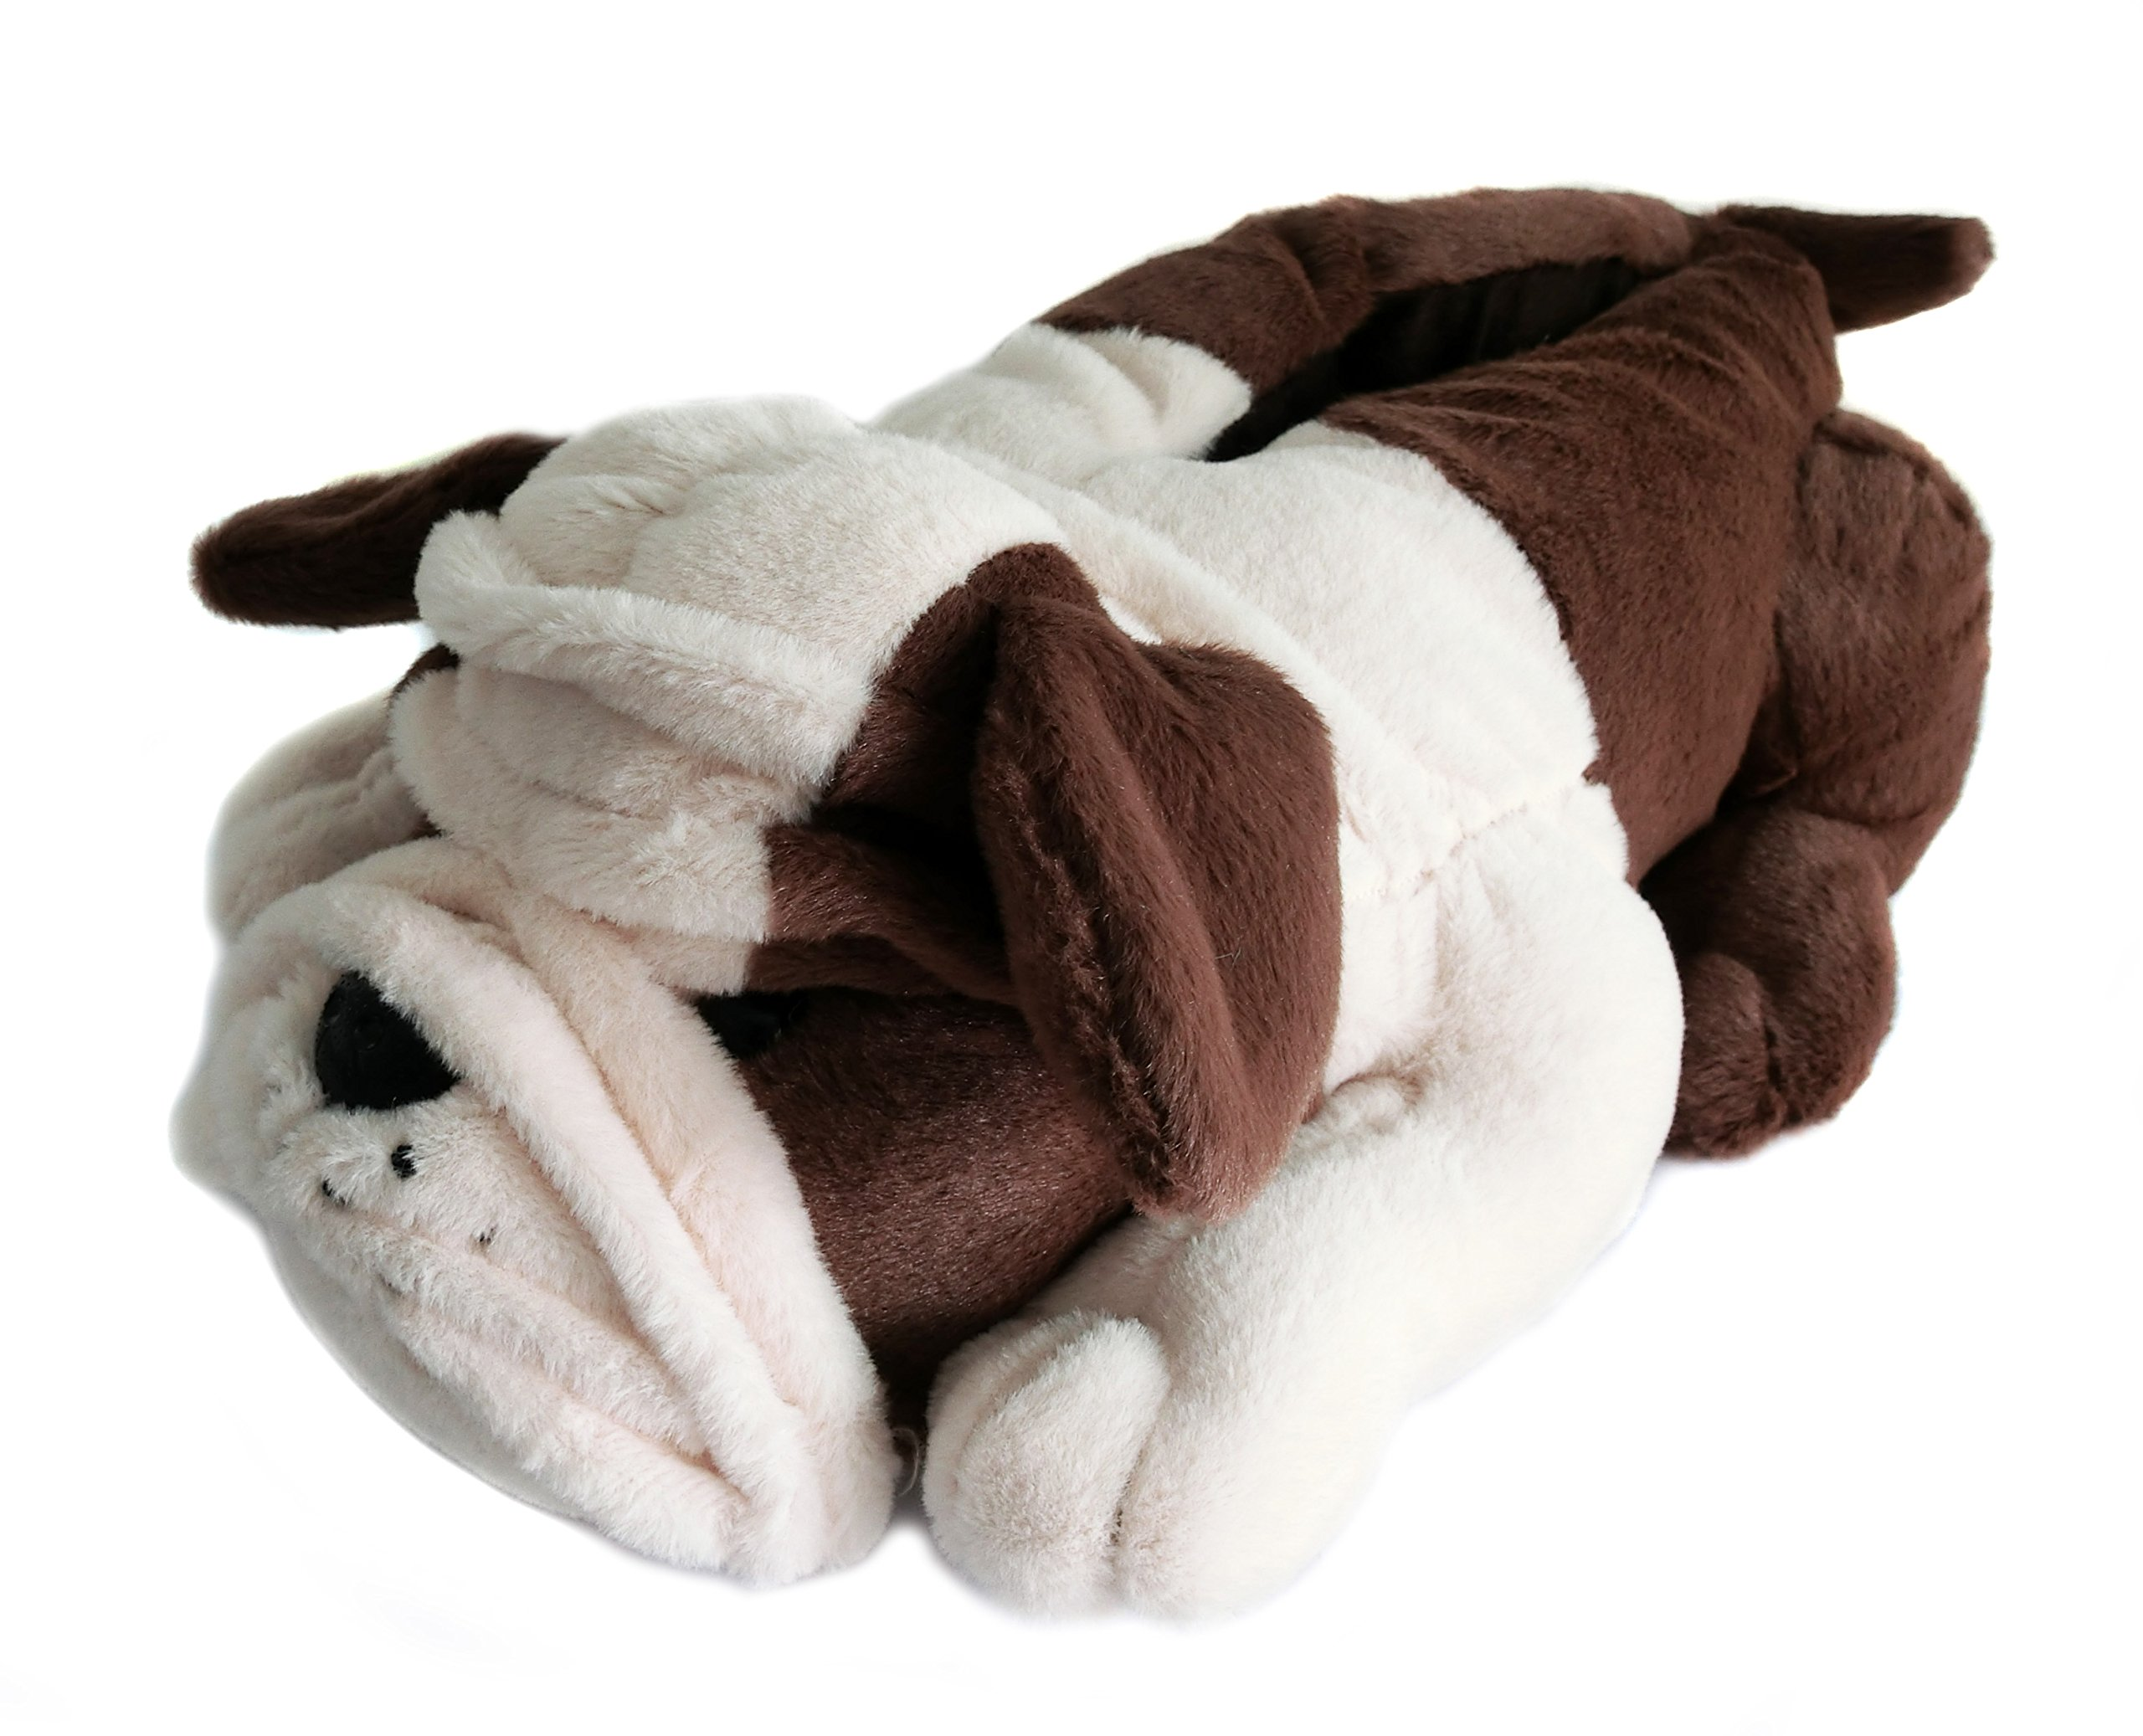 Fuzzy Winter Indoor Animal Bulldog Slippers for Adult and Kid, Bull Dogs (US Women Size 7-9, Coffee Bulldog) by Onmygogo (Image #3)